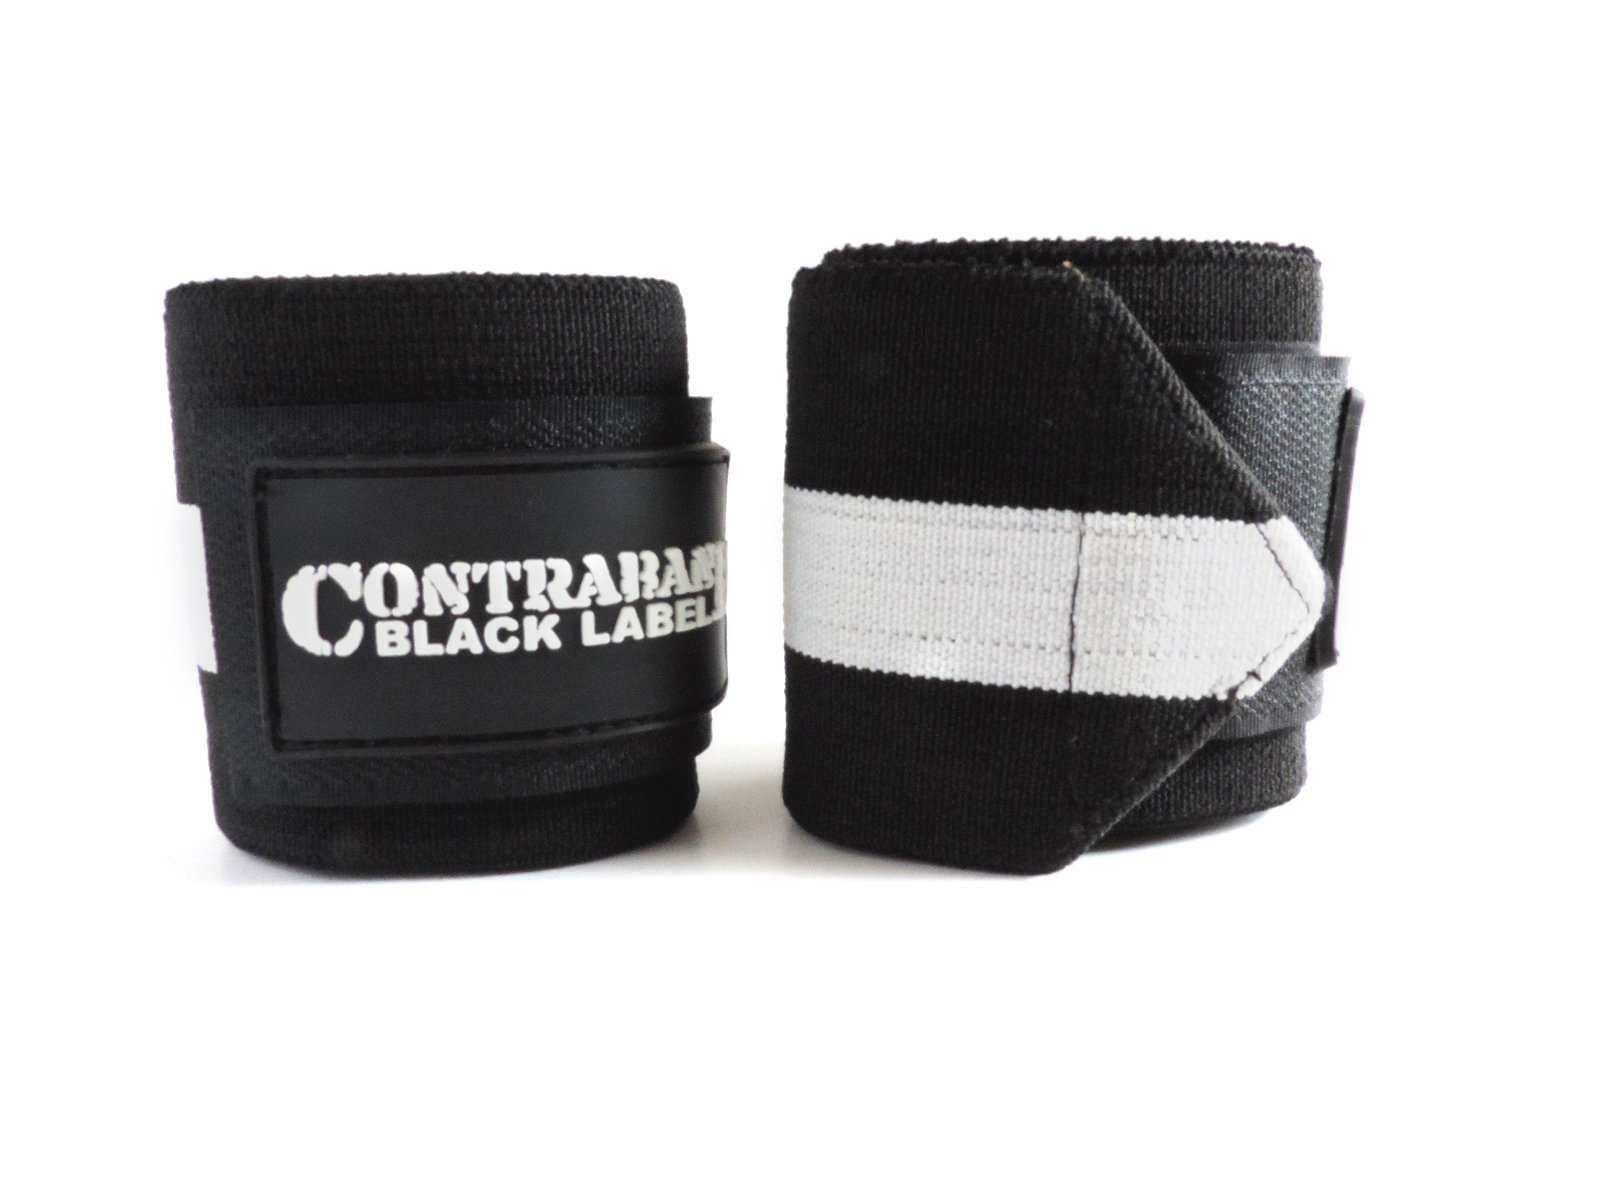 Contraband Black Label 1001 Weight Lifting Wrist Wraps w/Thumb Loops (Pair) - Competition Grade Wrist Support USPA Approved for Powerlifting, Bodybuilding, Strongman (24in, Extreme (White))